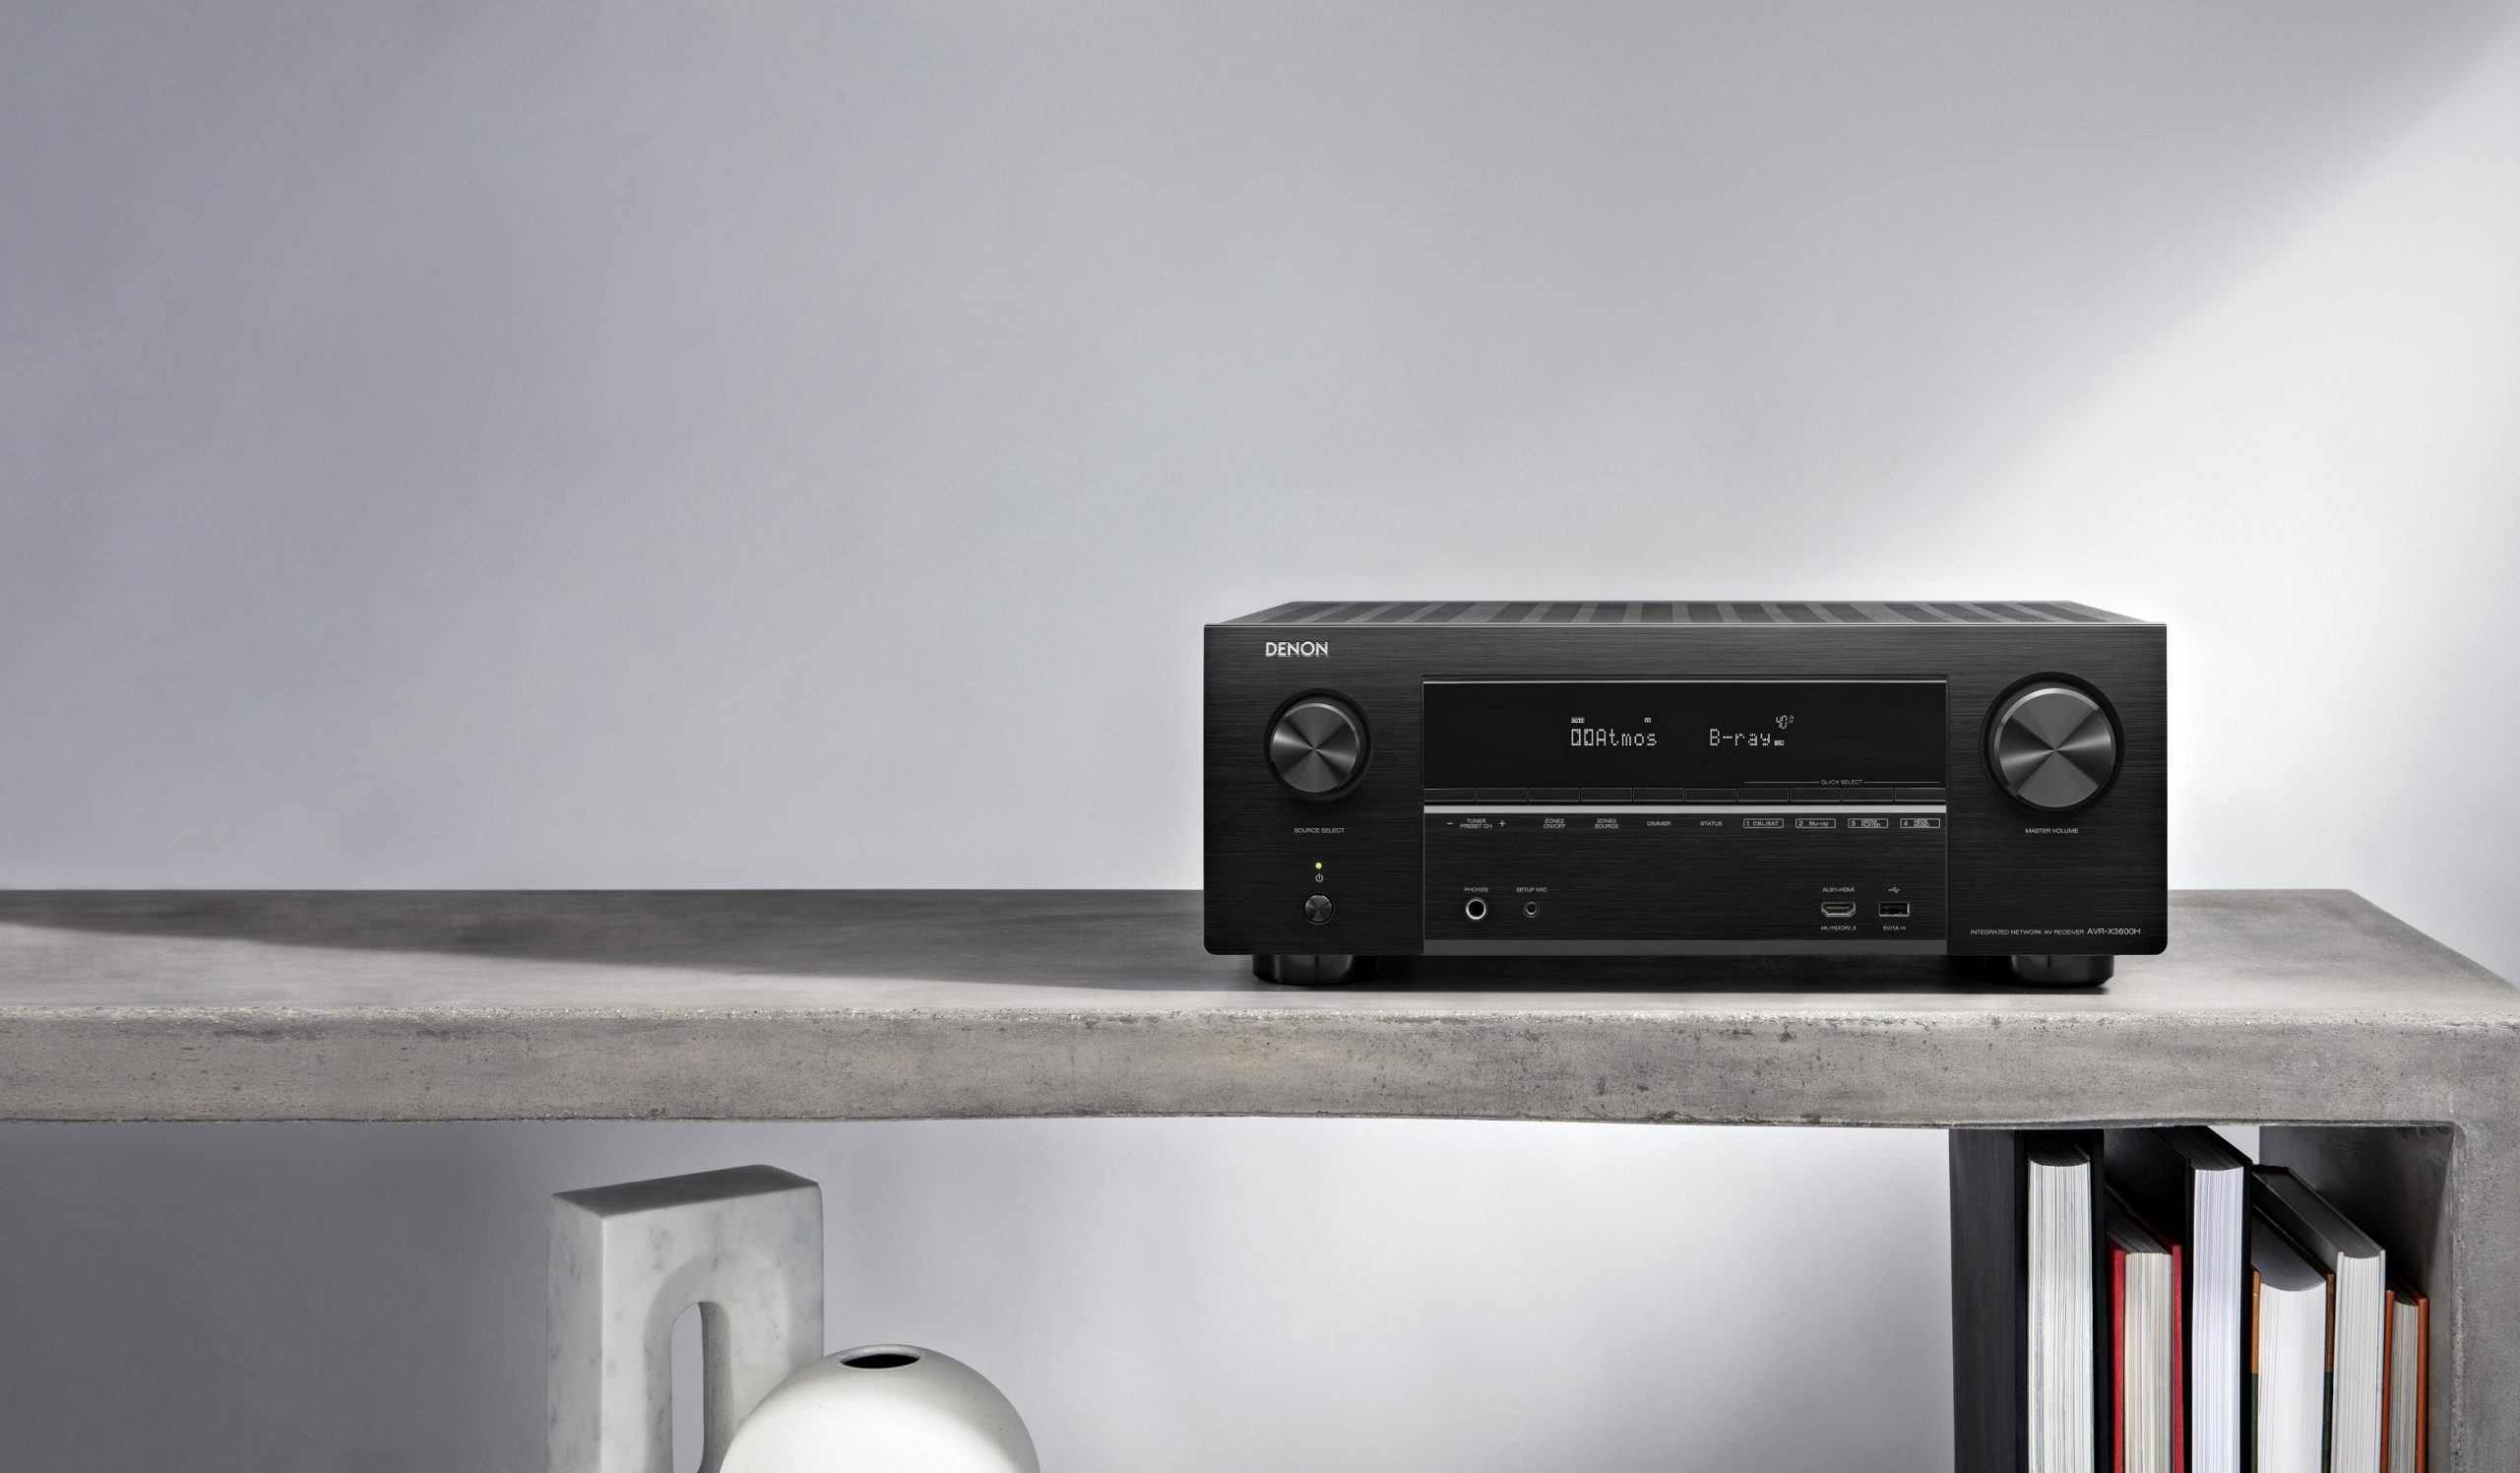 Breathe New Life Into Your Home Theatre With Denon AVR-X3600H – Available Through Homemation